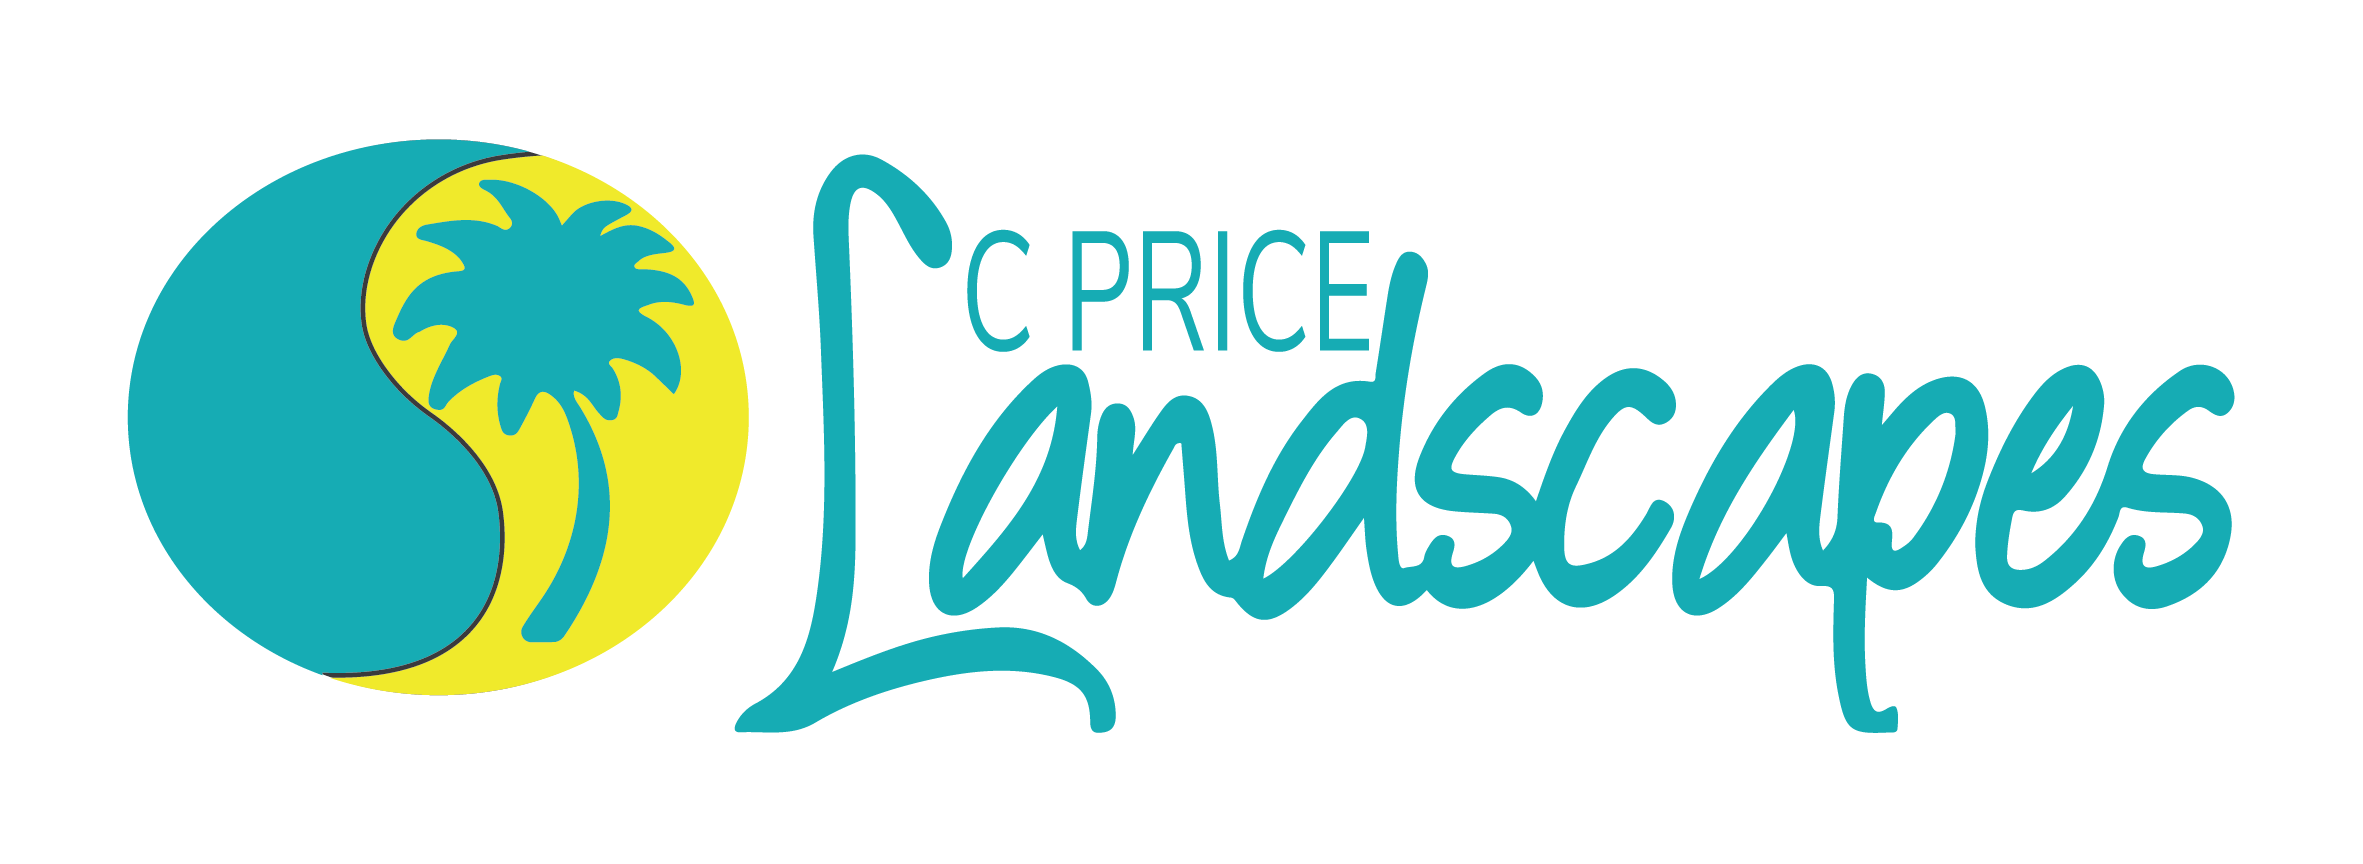 cprice